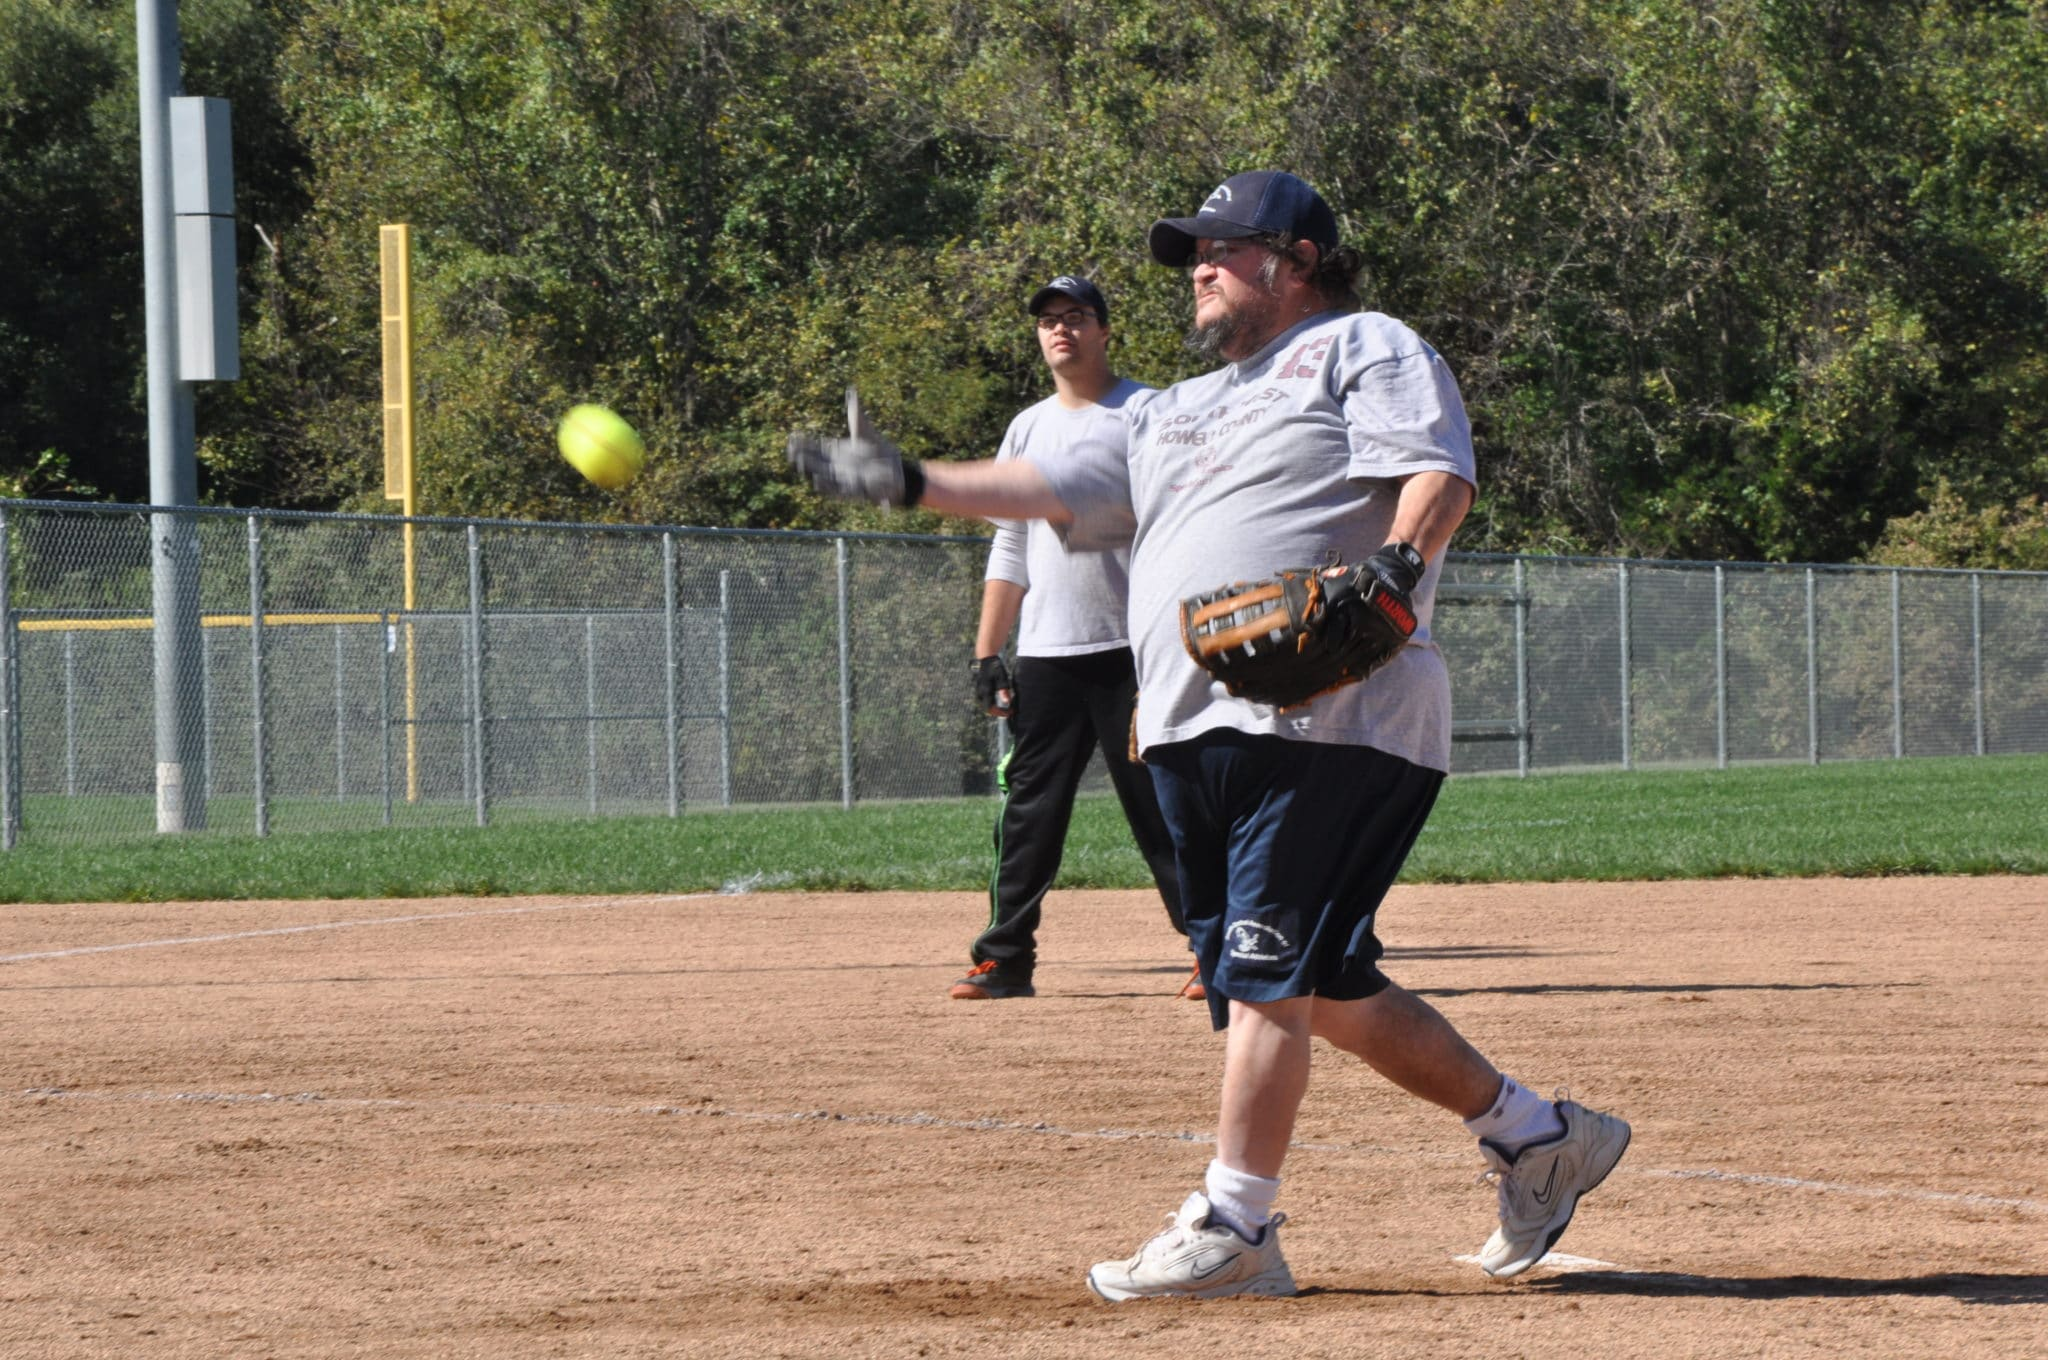 Dicky Pitching 2